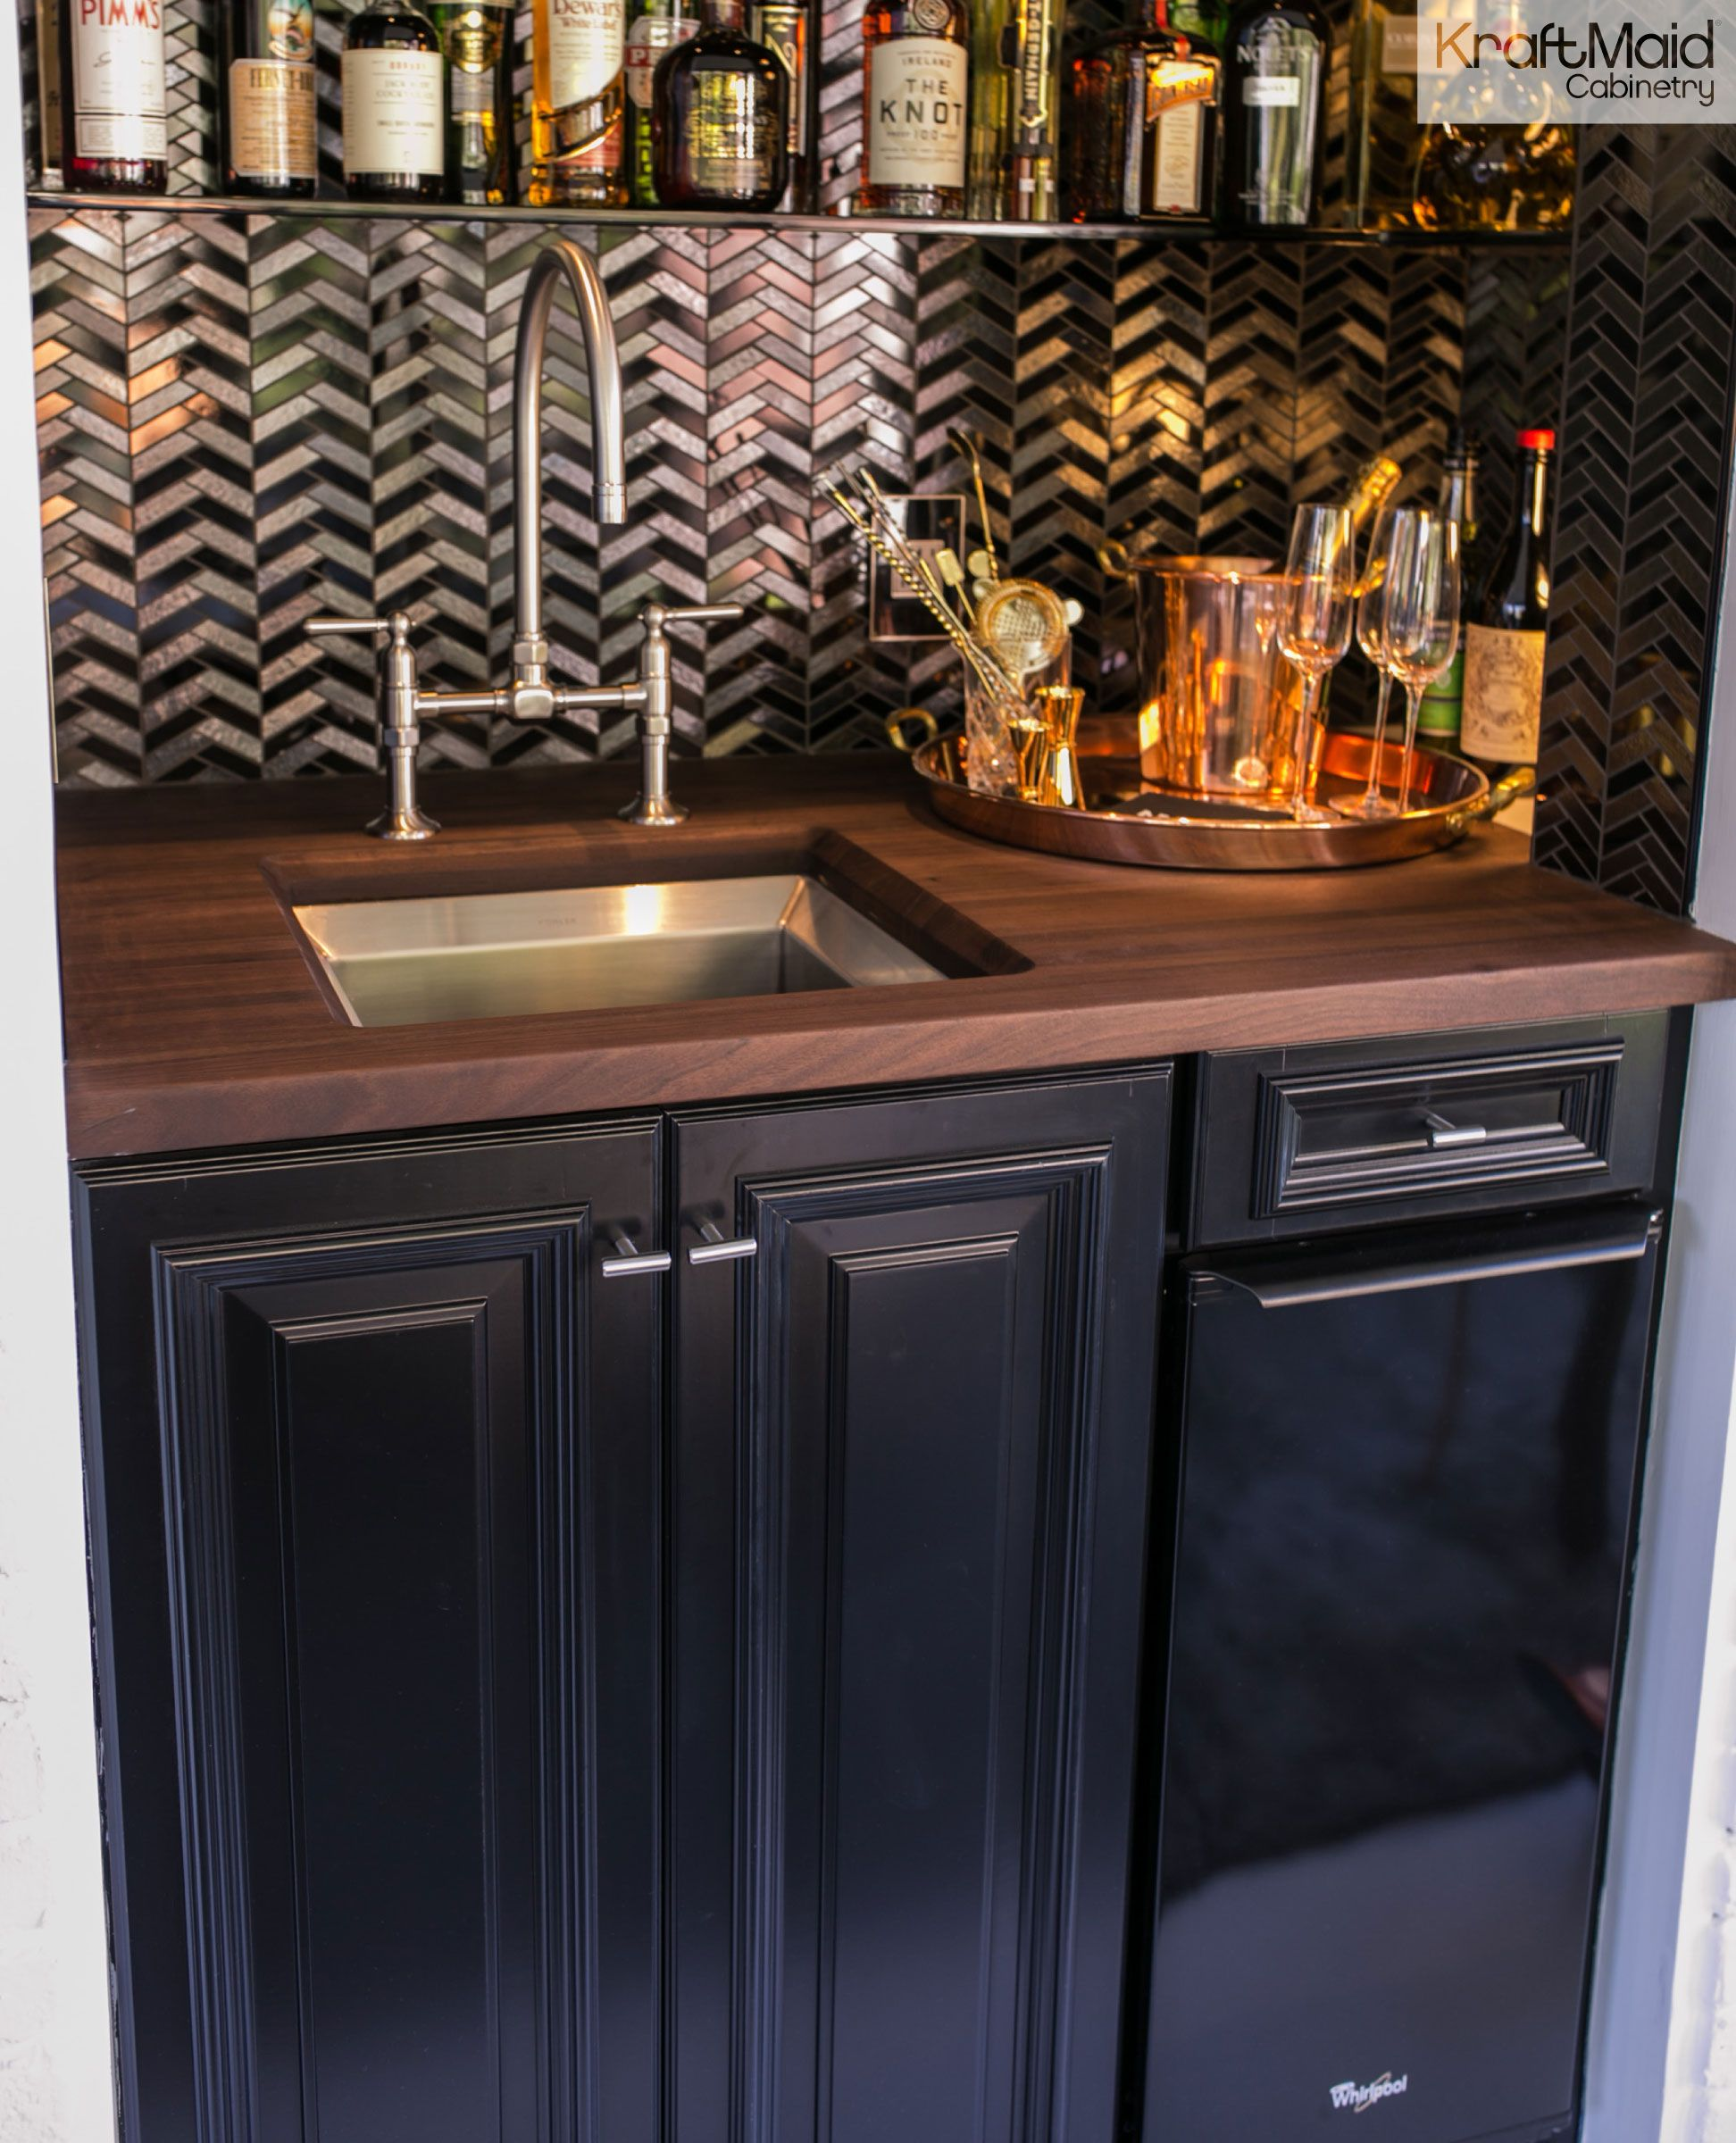 House Beautiful Kitchen: (Video) Kitchen Of The Year: Designer's Vision